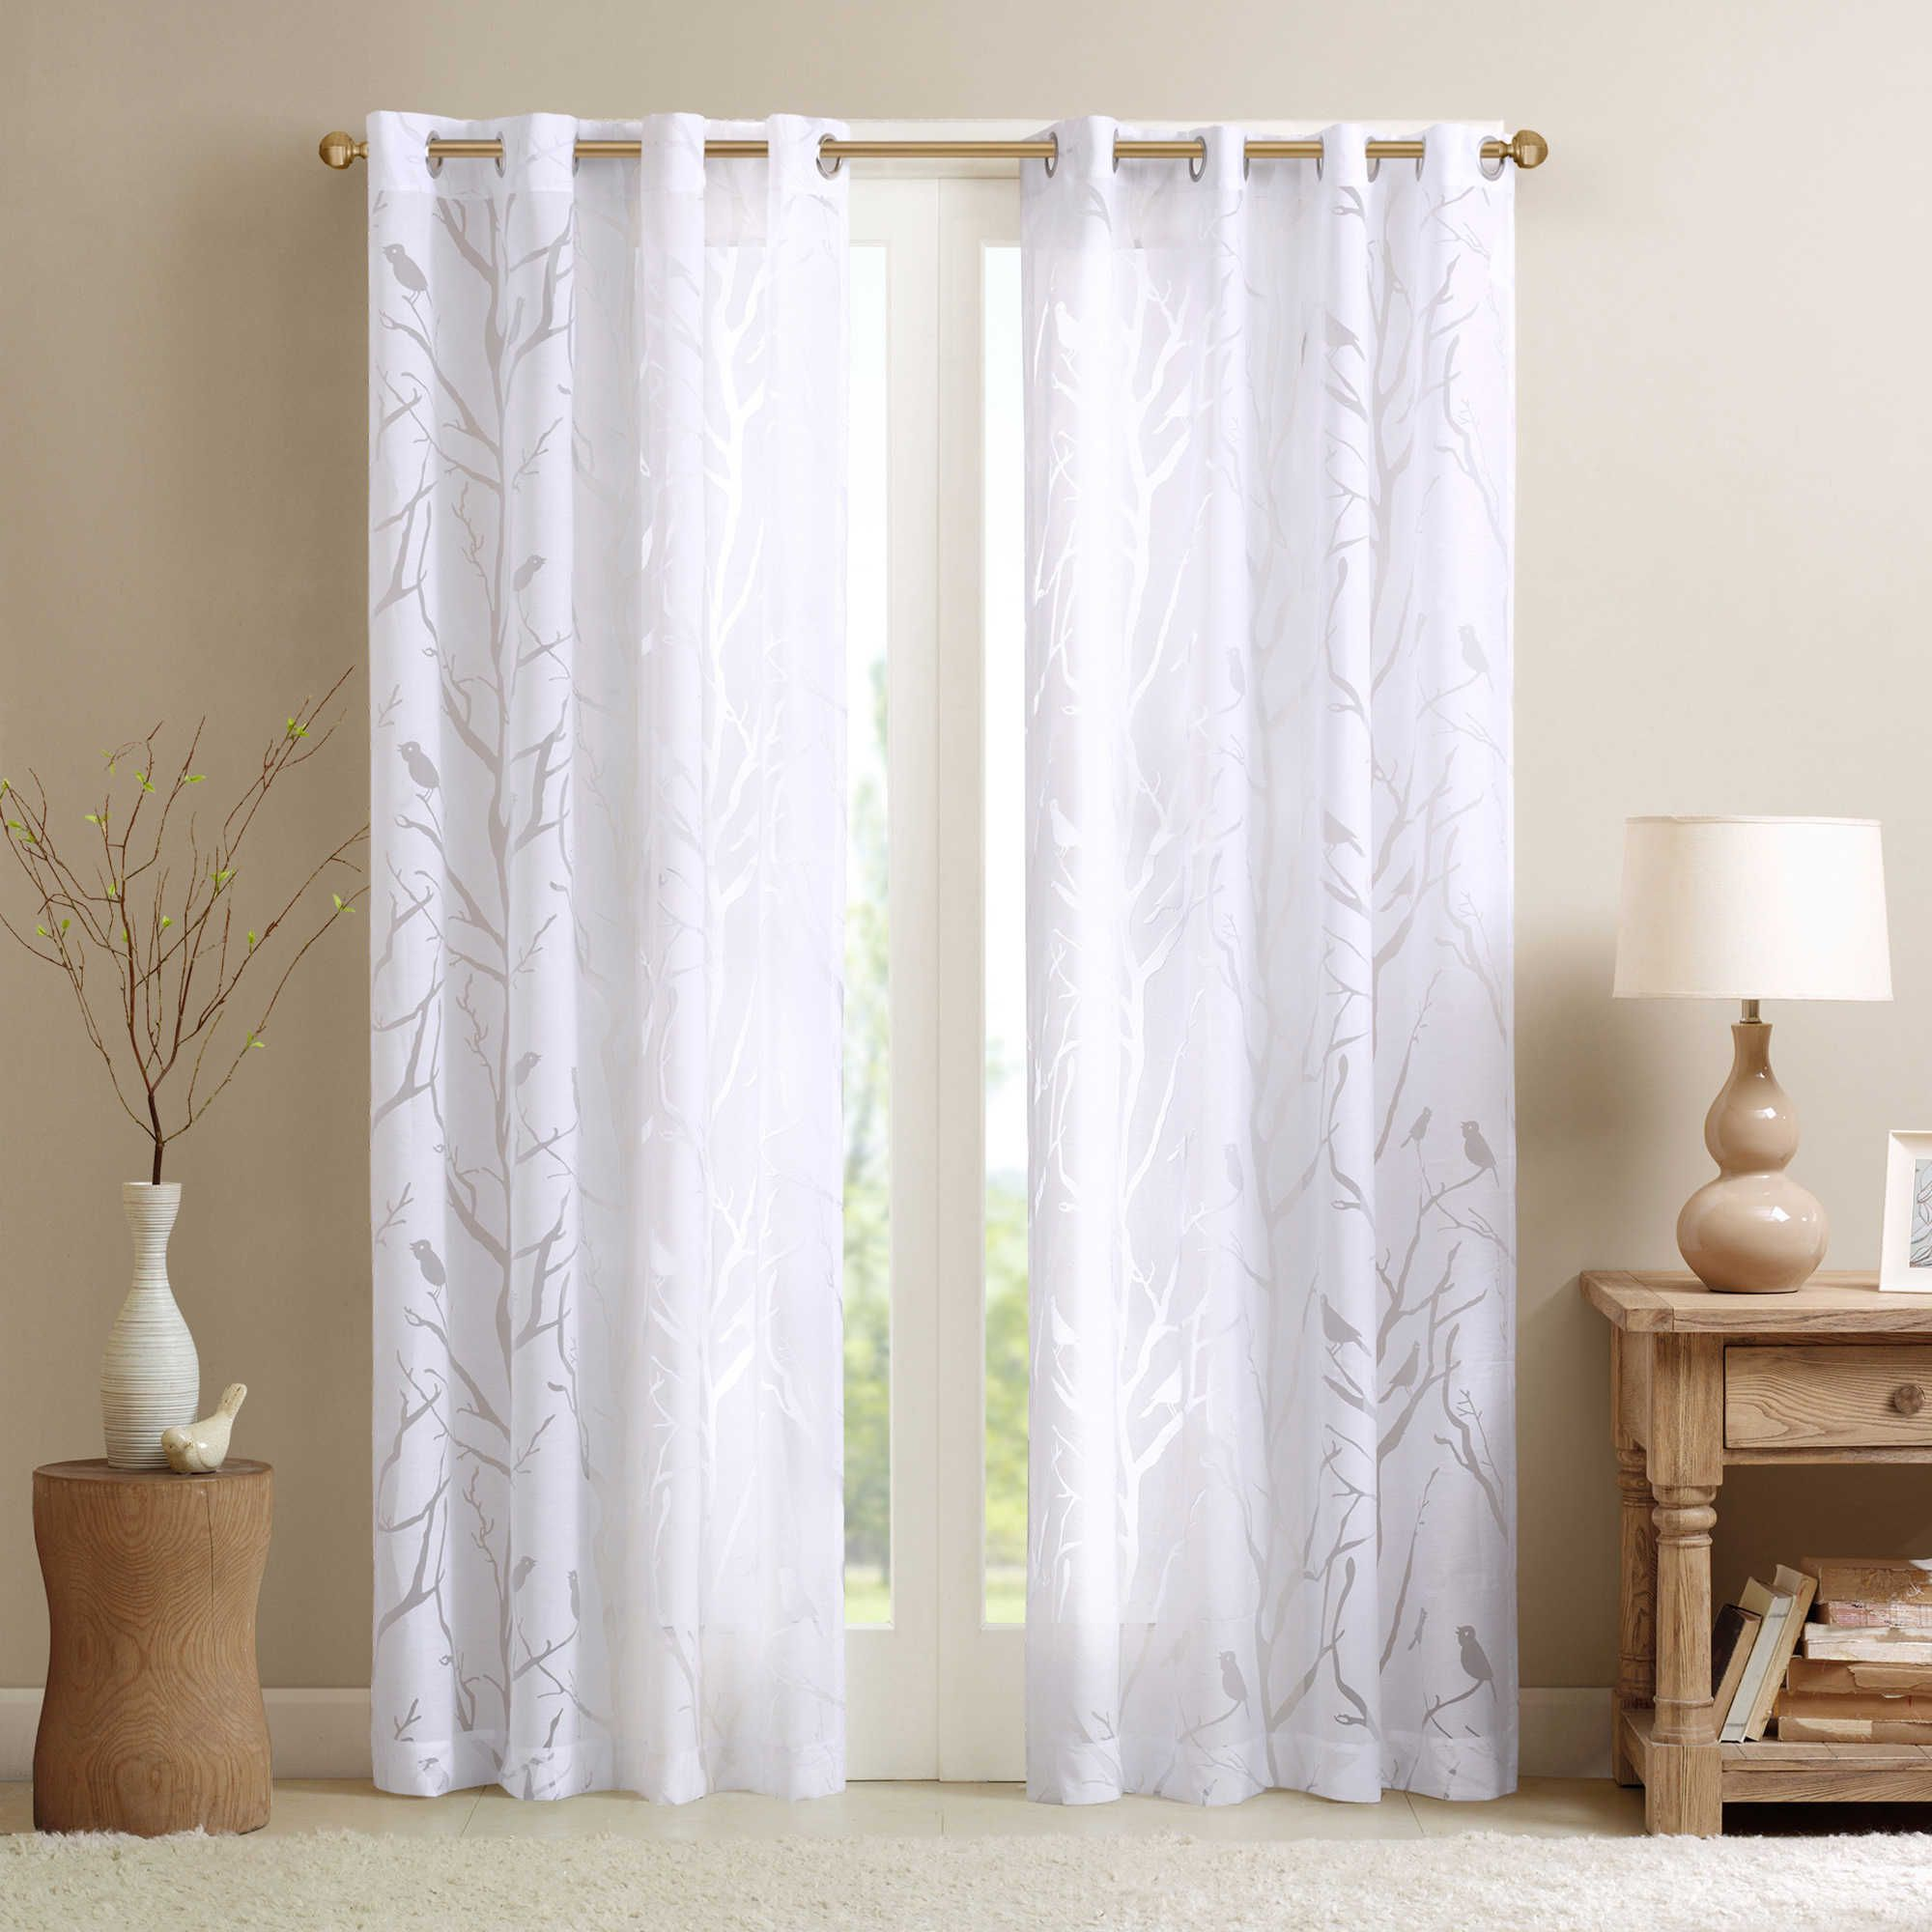 Madison park averil sheer bird 63 inch grommet top window for Grommet curtains with sheers